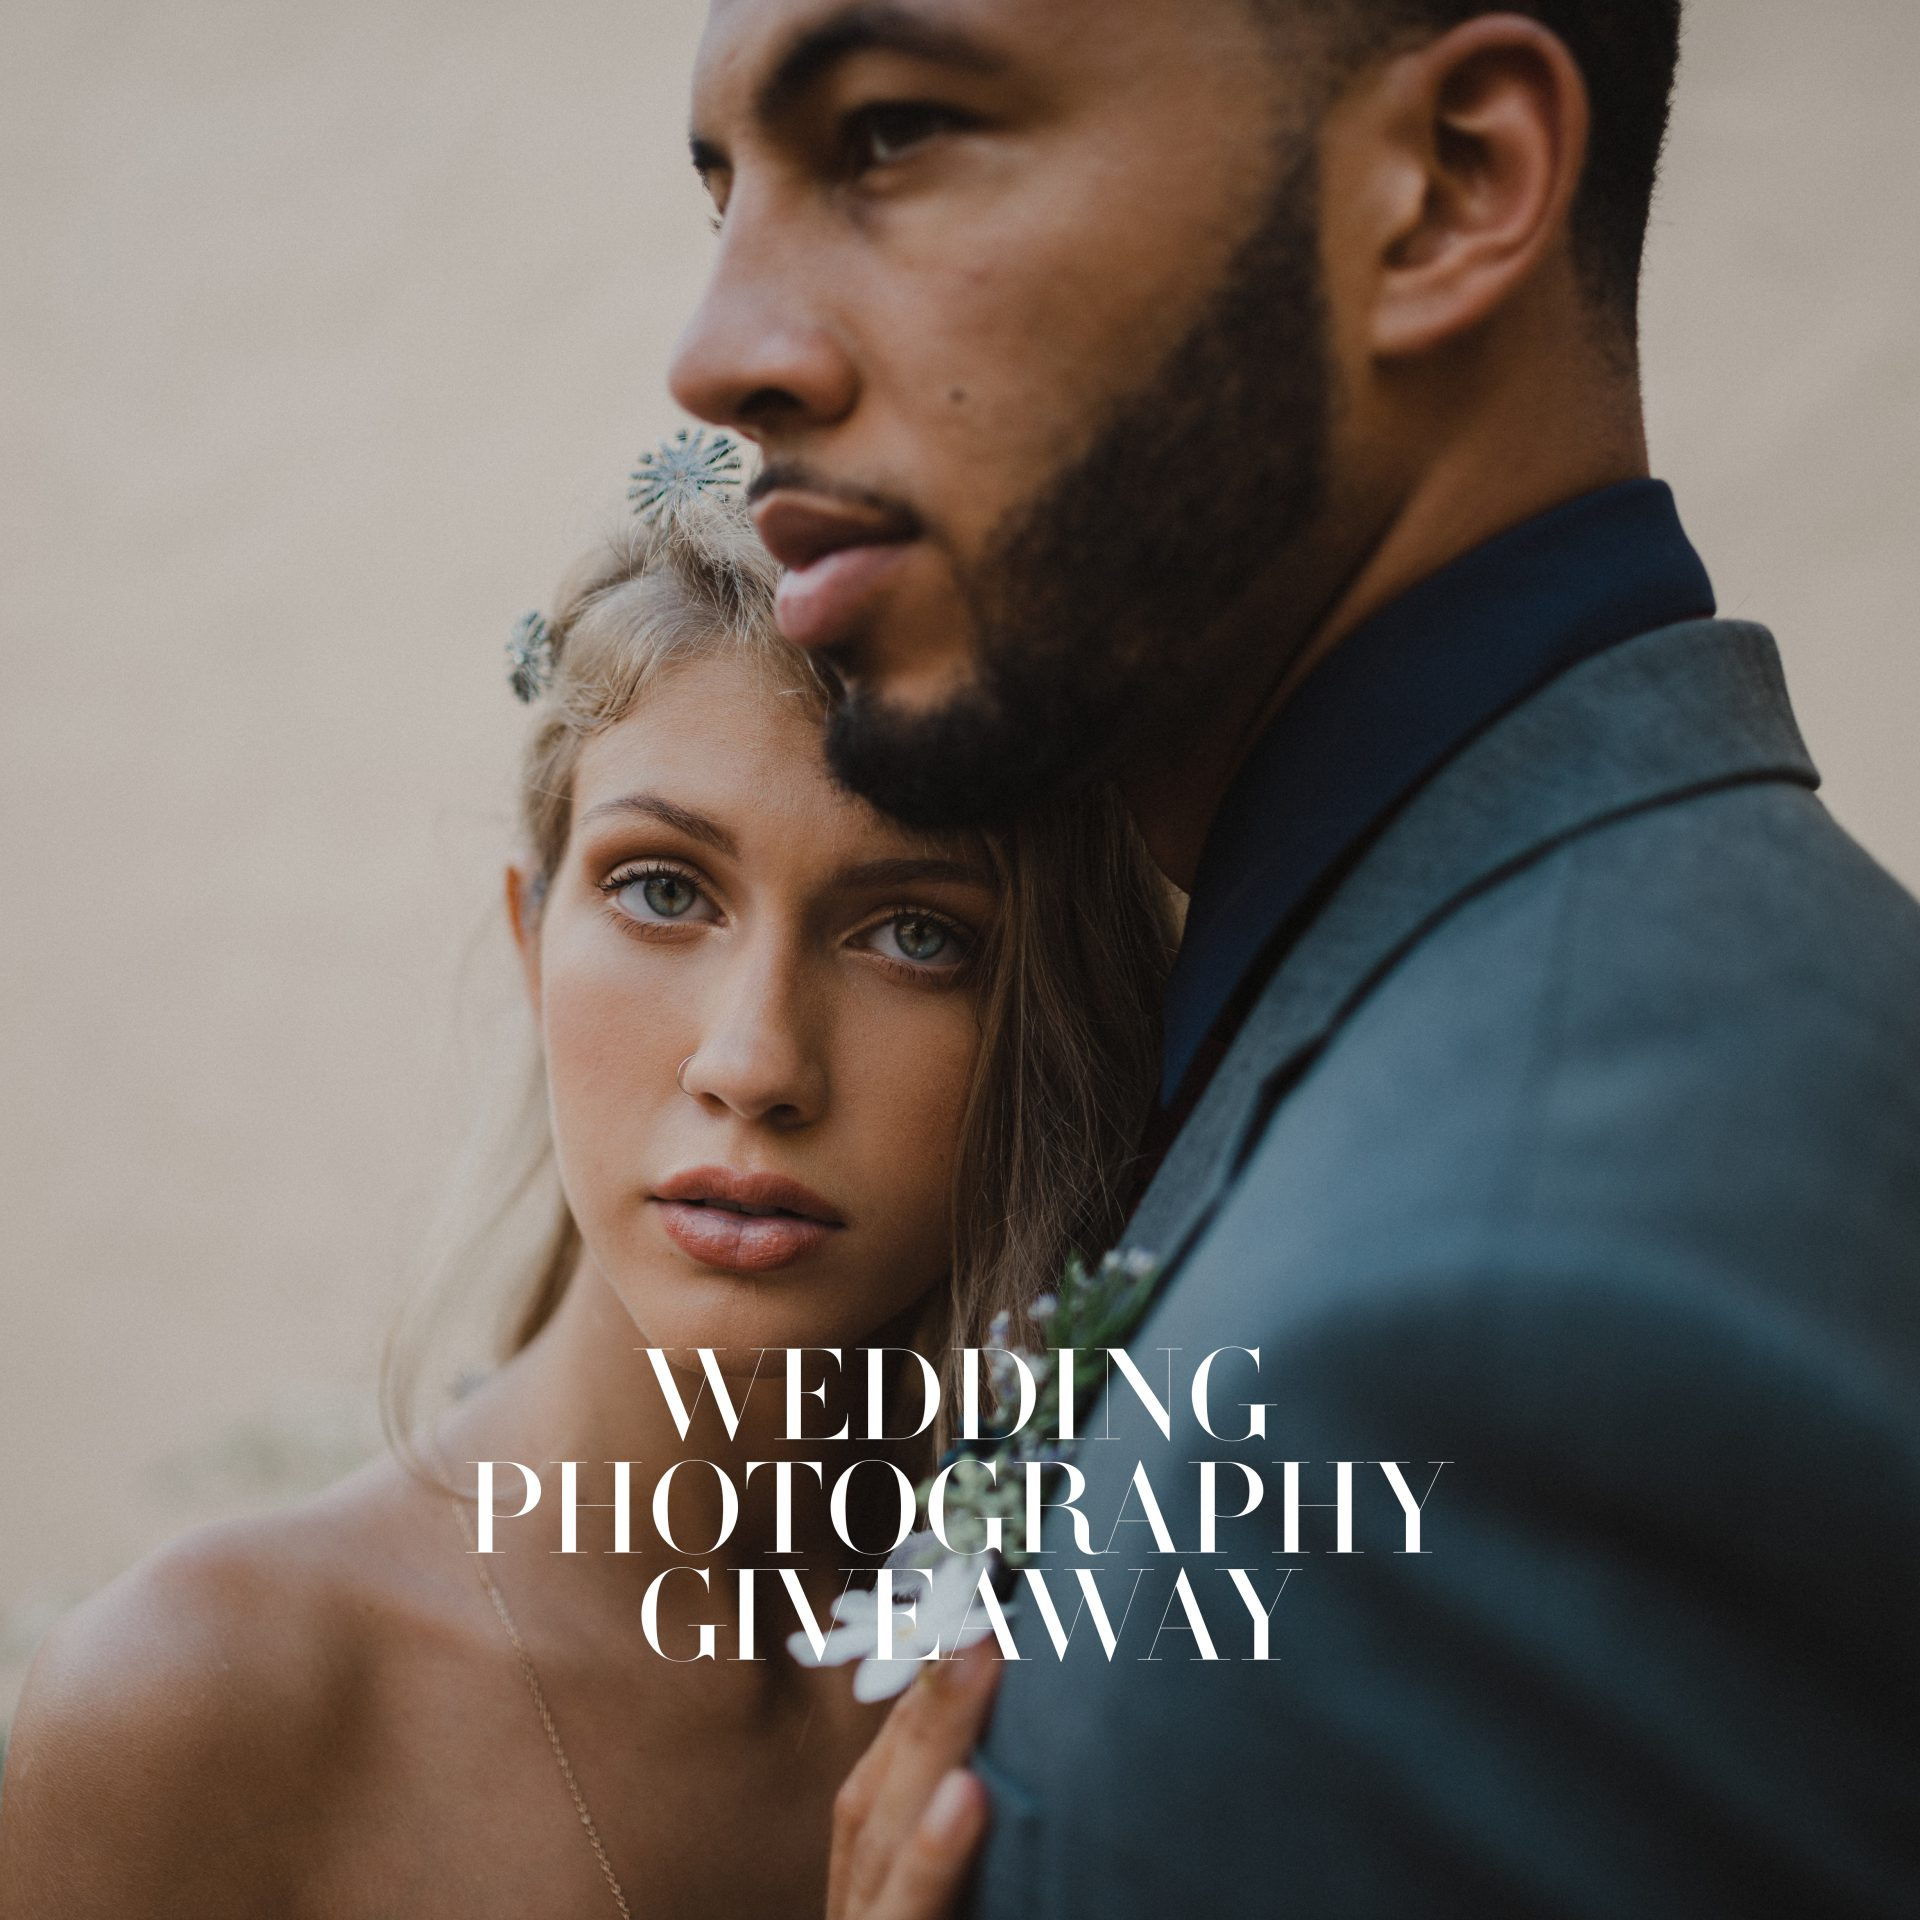 Wedding Photography Giveaway